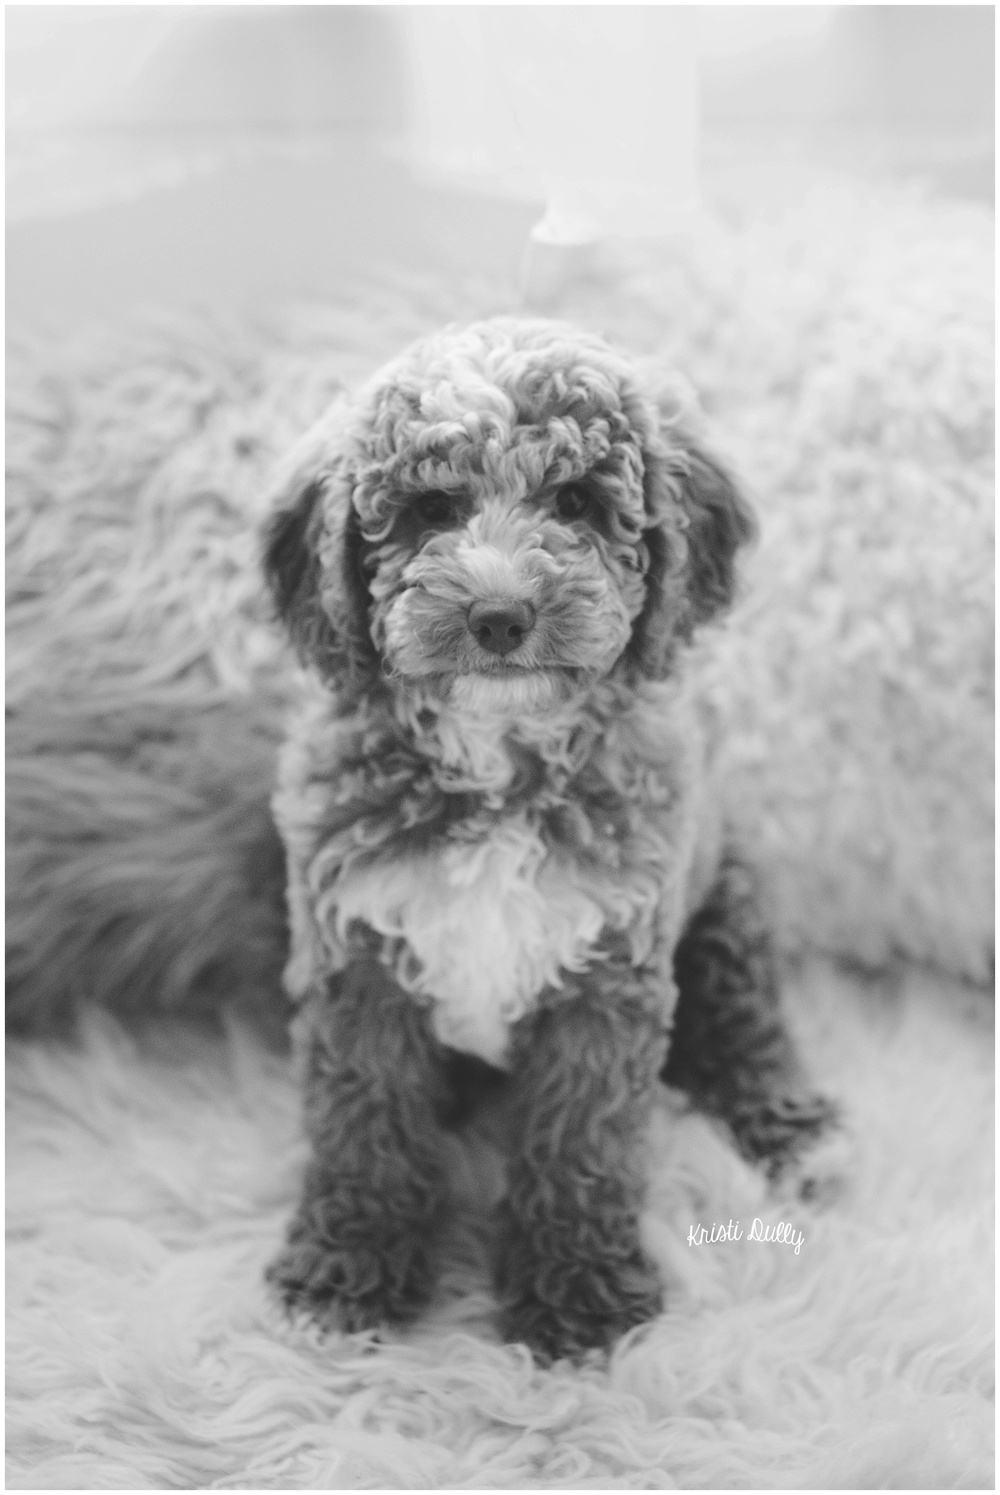 This is Axl. He is a 2 month old Austrailian Labradoodle.